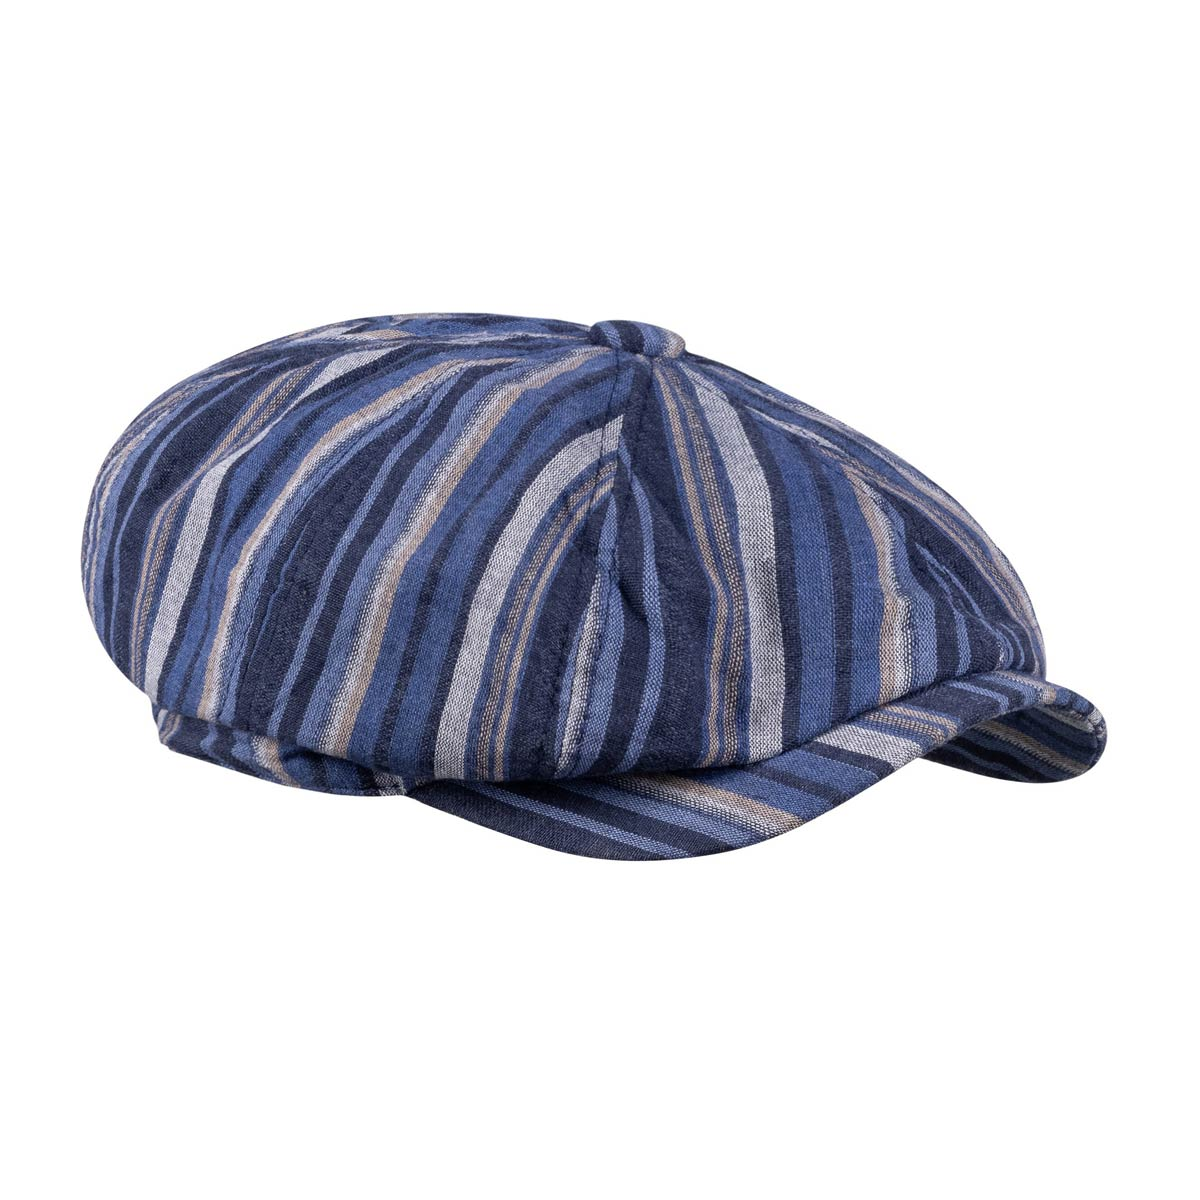 CP-01641_F12-1--_casquette-plate-homme-rayures-bleu-